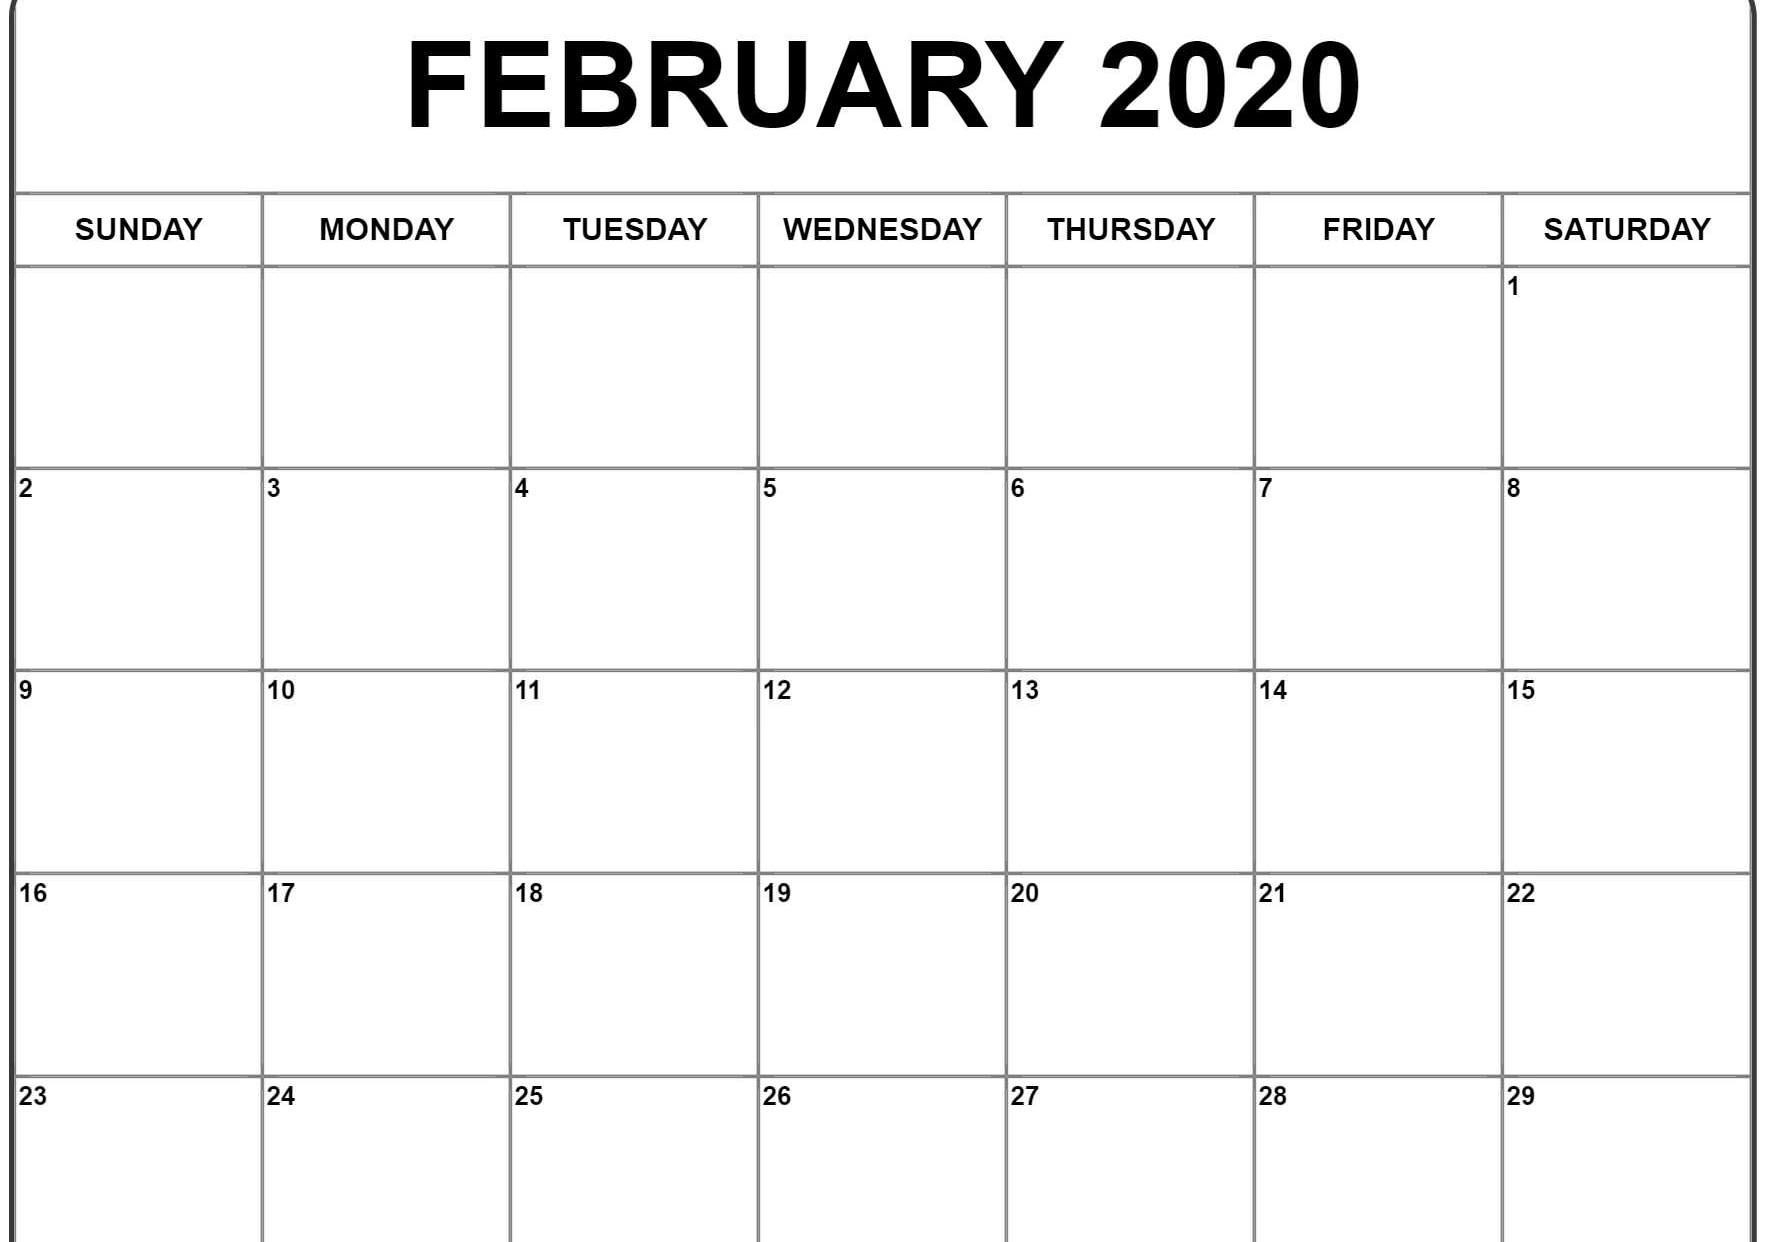 February 2020 Calendar Excel | February Calendar, Excel-Blank 2020 Calendar Month By Month